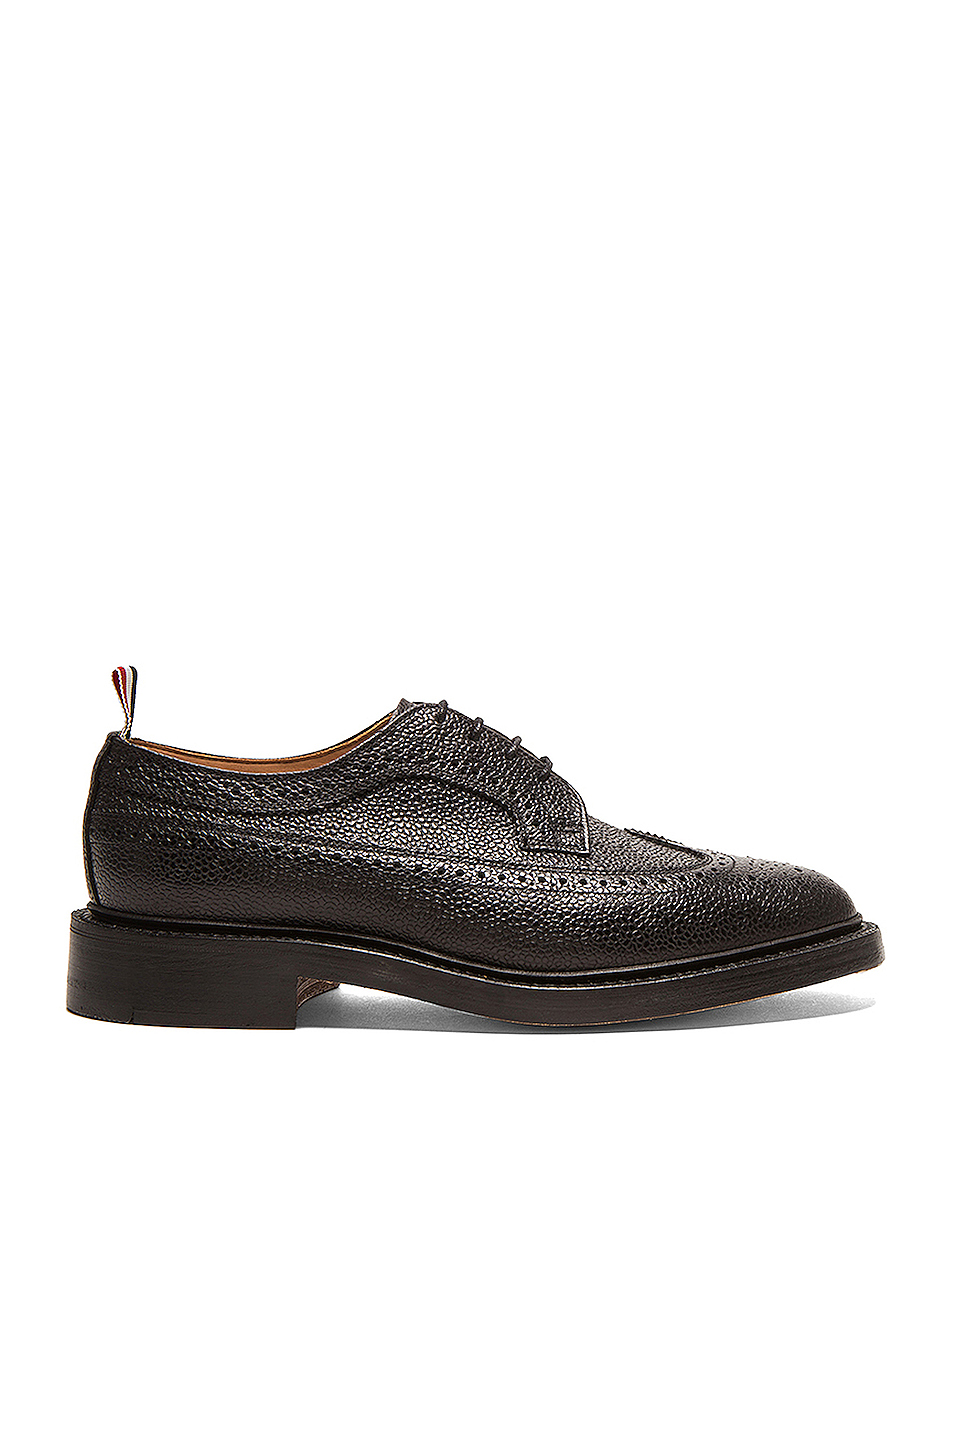 Thom Browne Classic Long Leather Wingtips in Black